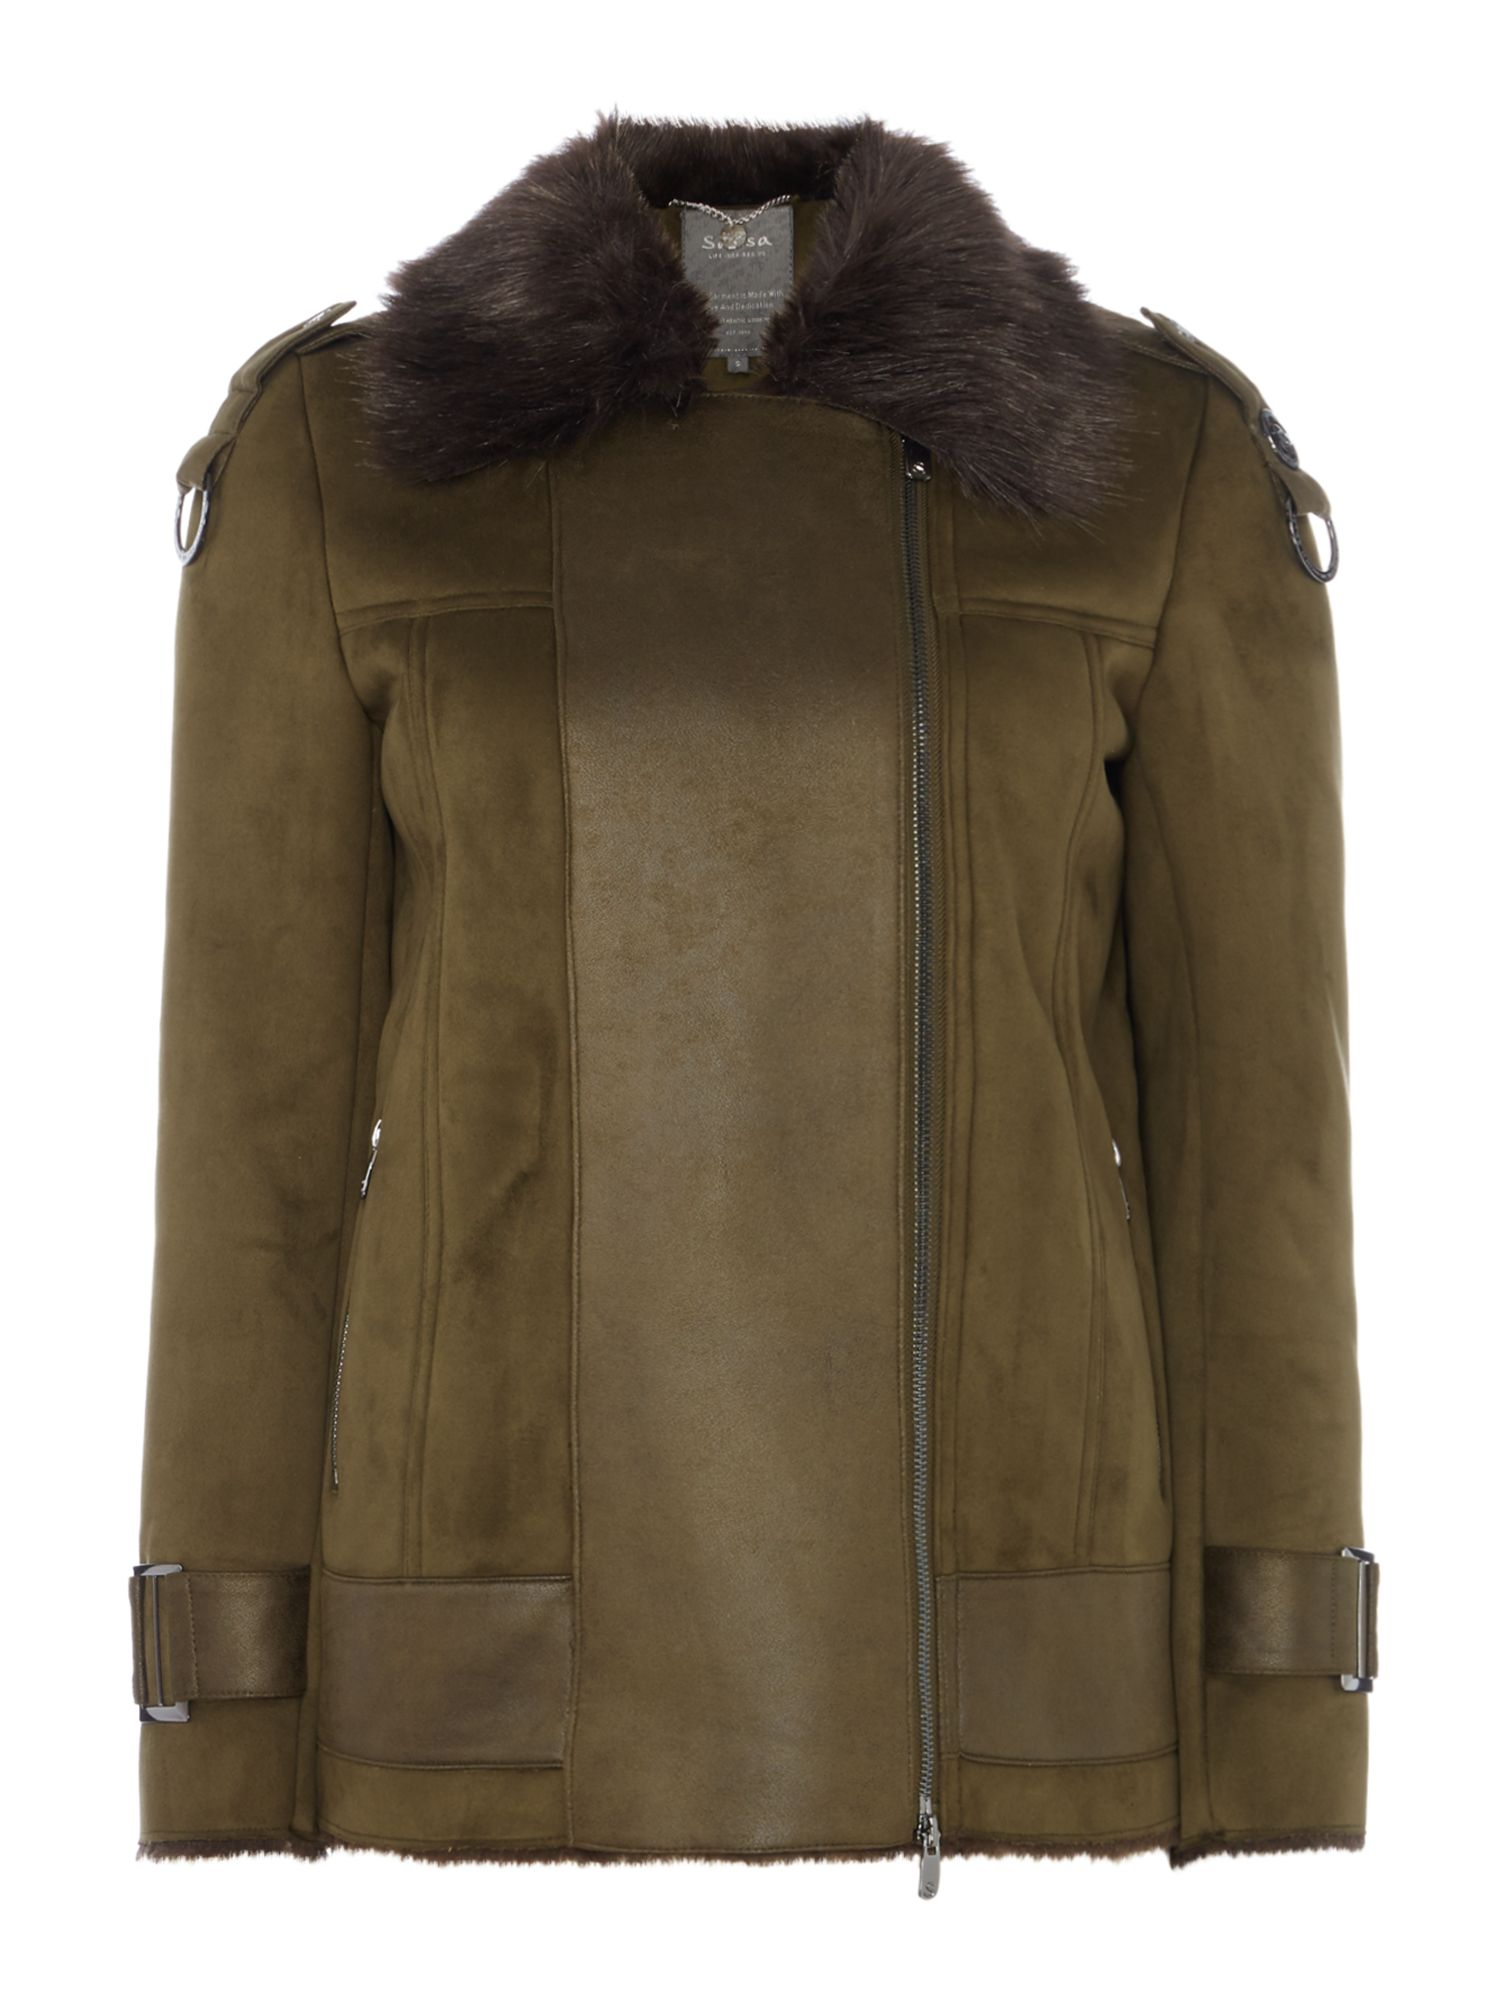 Long Sleeve Faux Shearling Aviator Jacket, Khaki